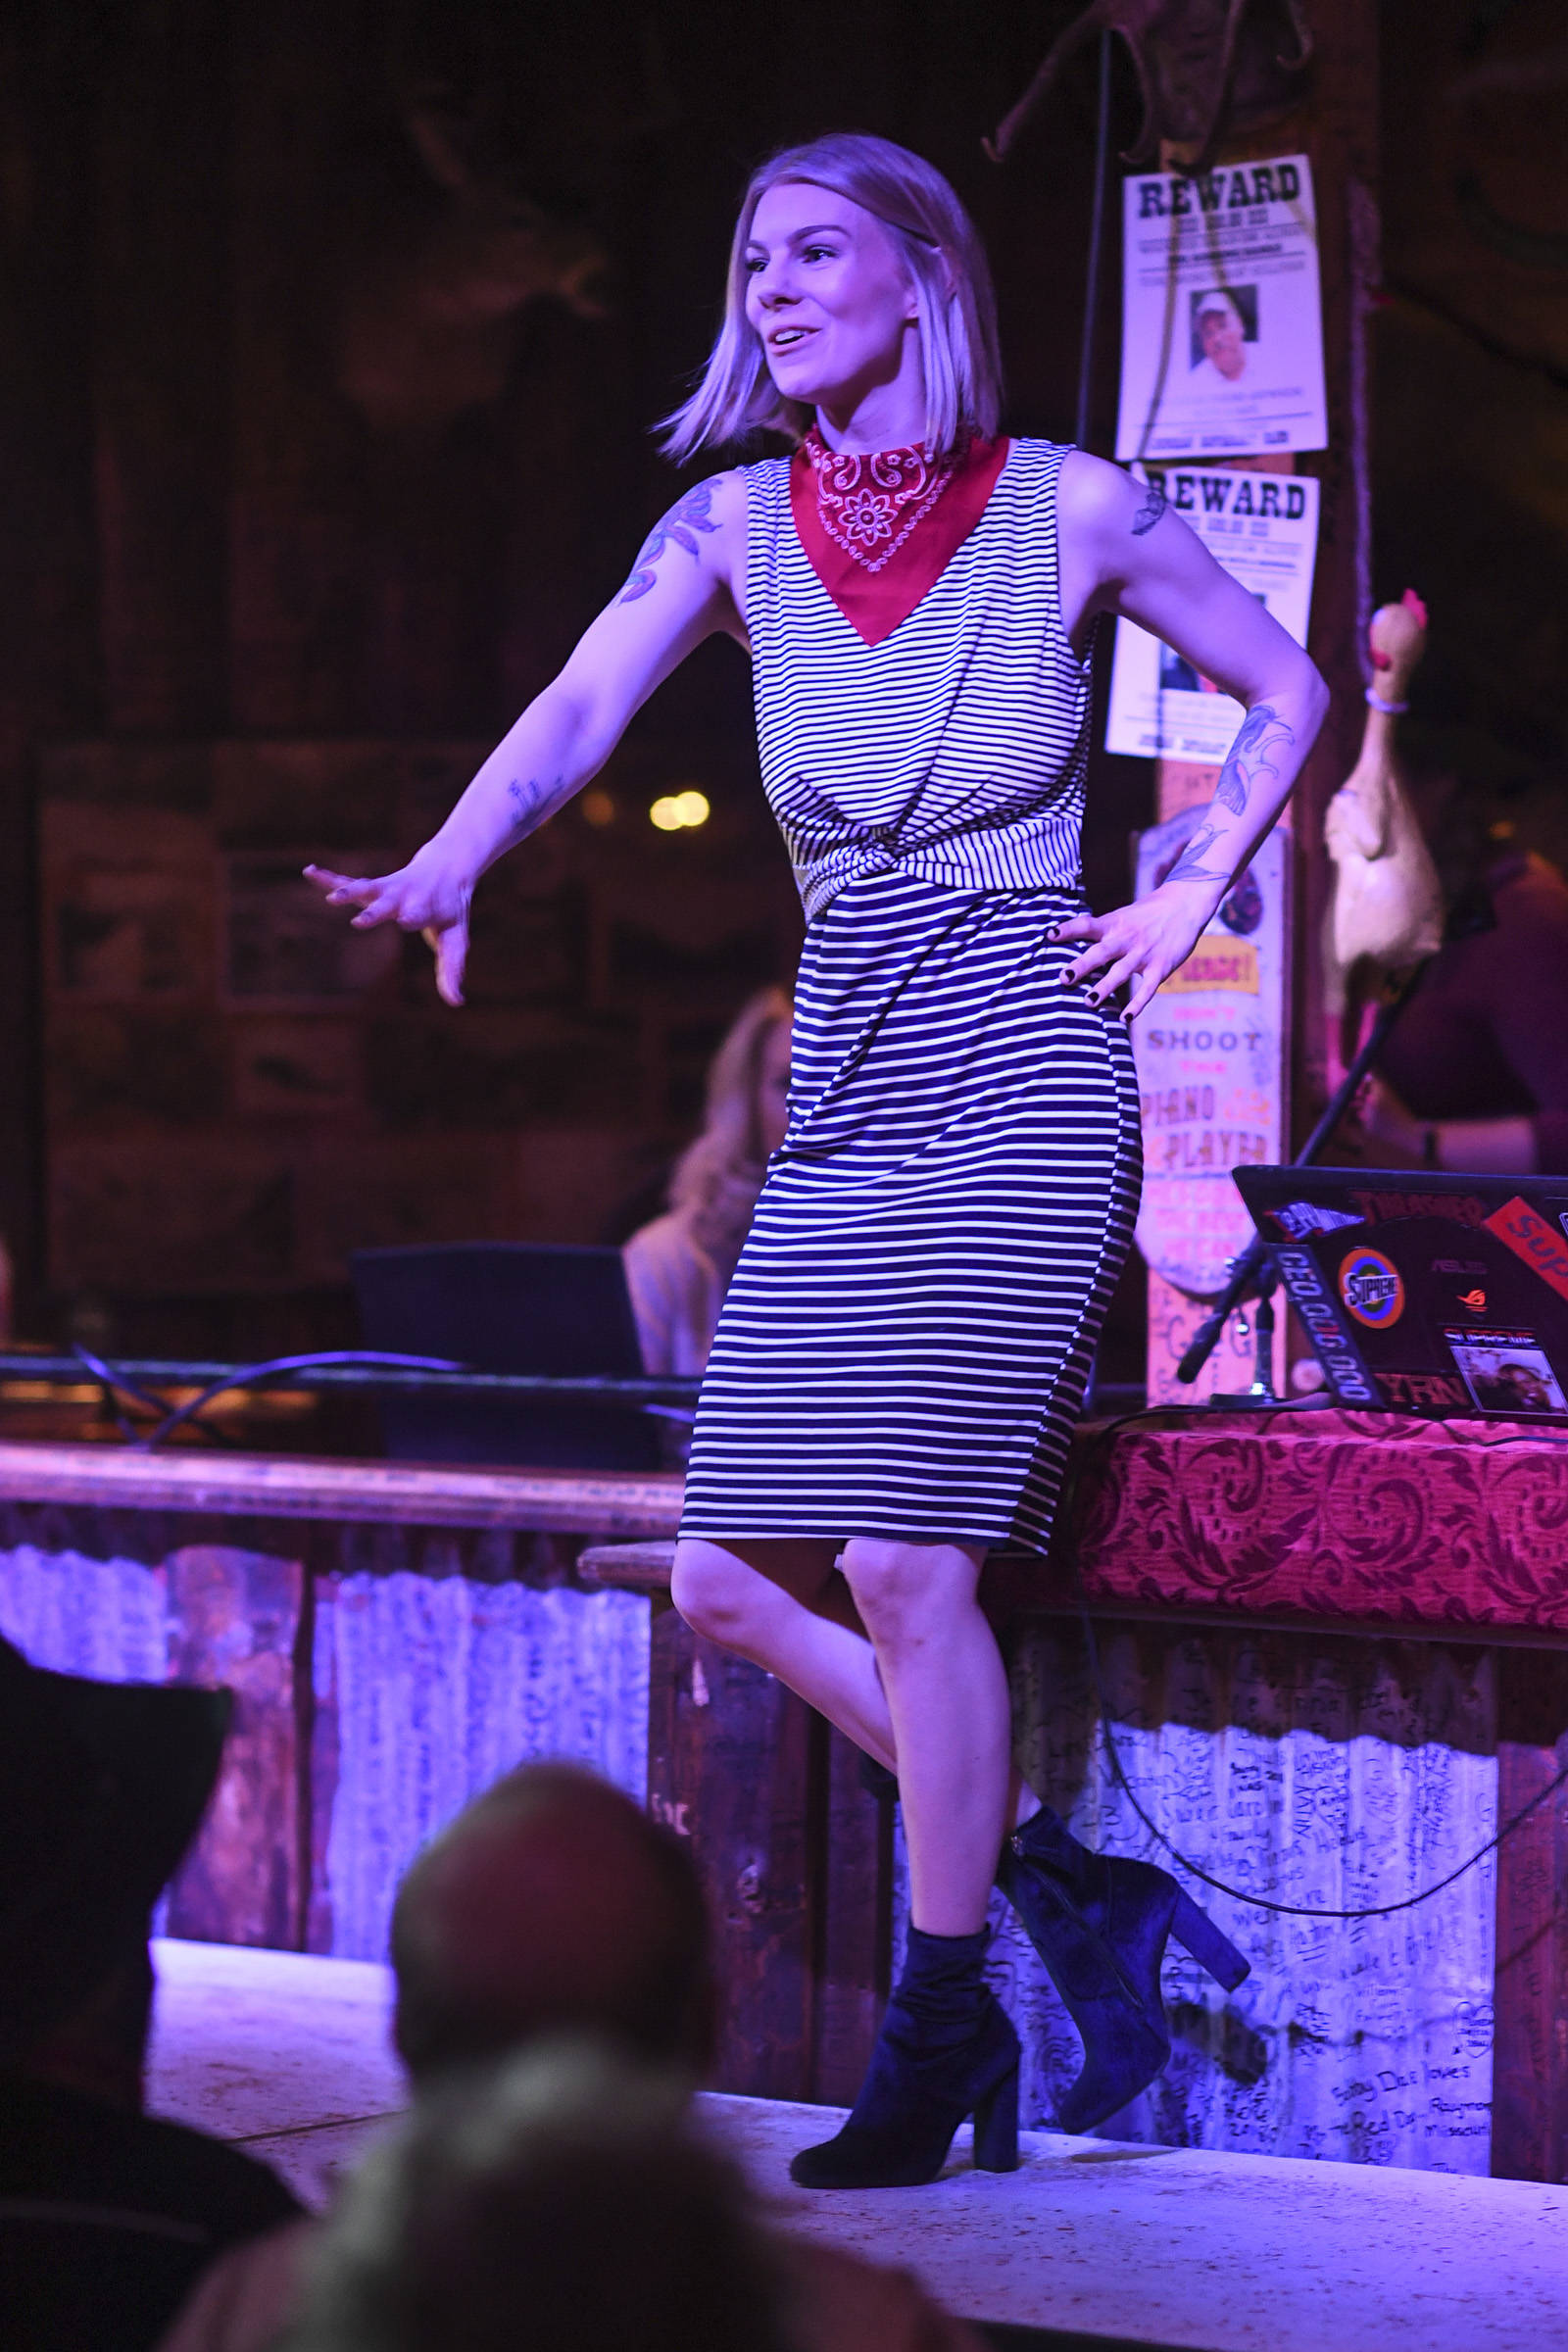 Women's clothing from The Studio is modeled on stage during the Juneau Rotaract's Wild West Roundup Fashion Show at the Red Dog Saloon on Saturday, April 27, 2019. (Michael Penn | Juneau Empire)